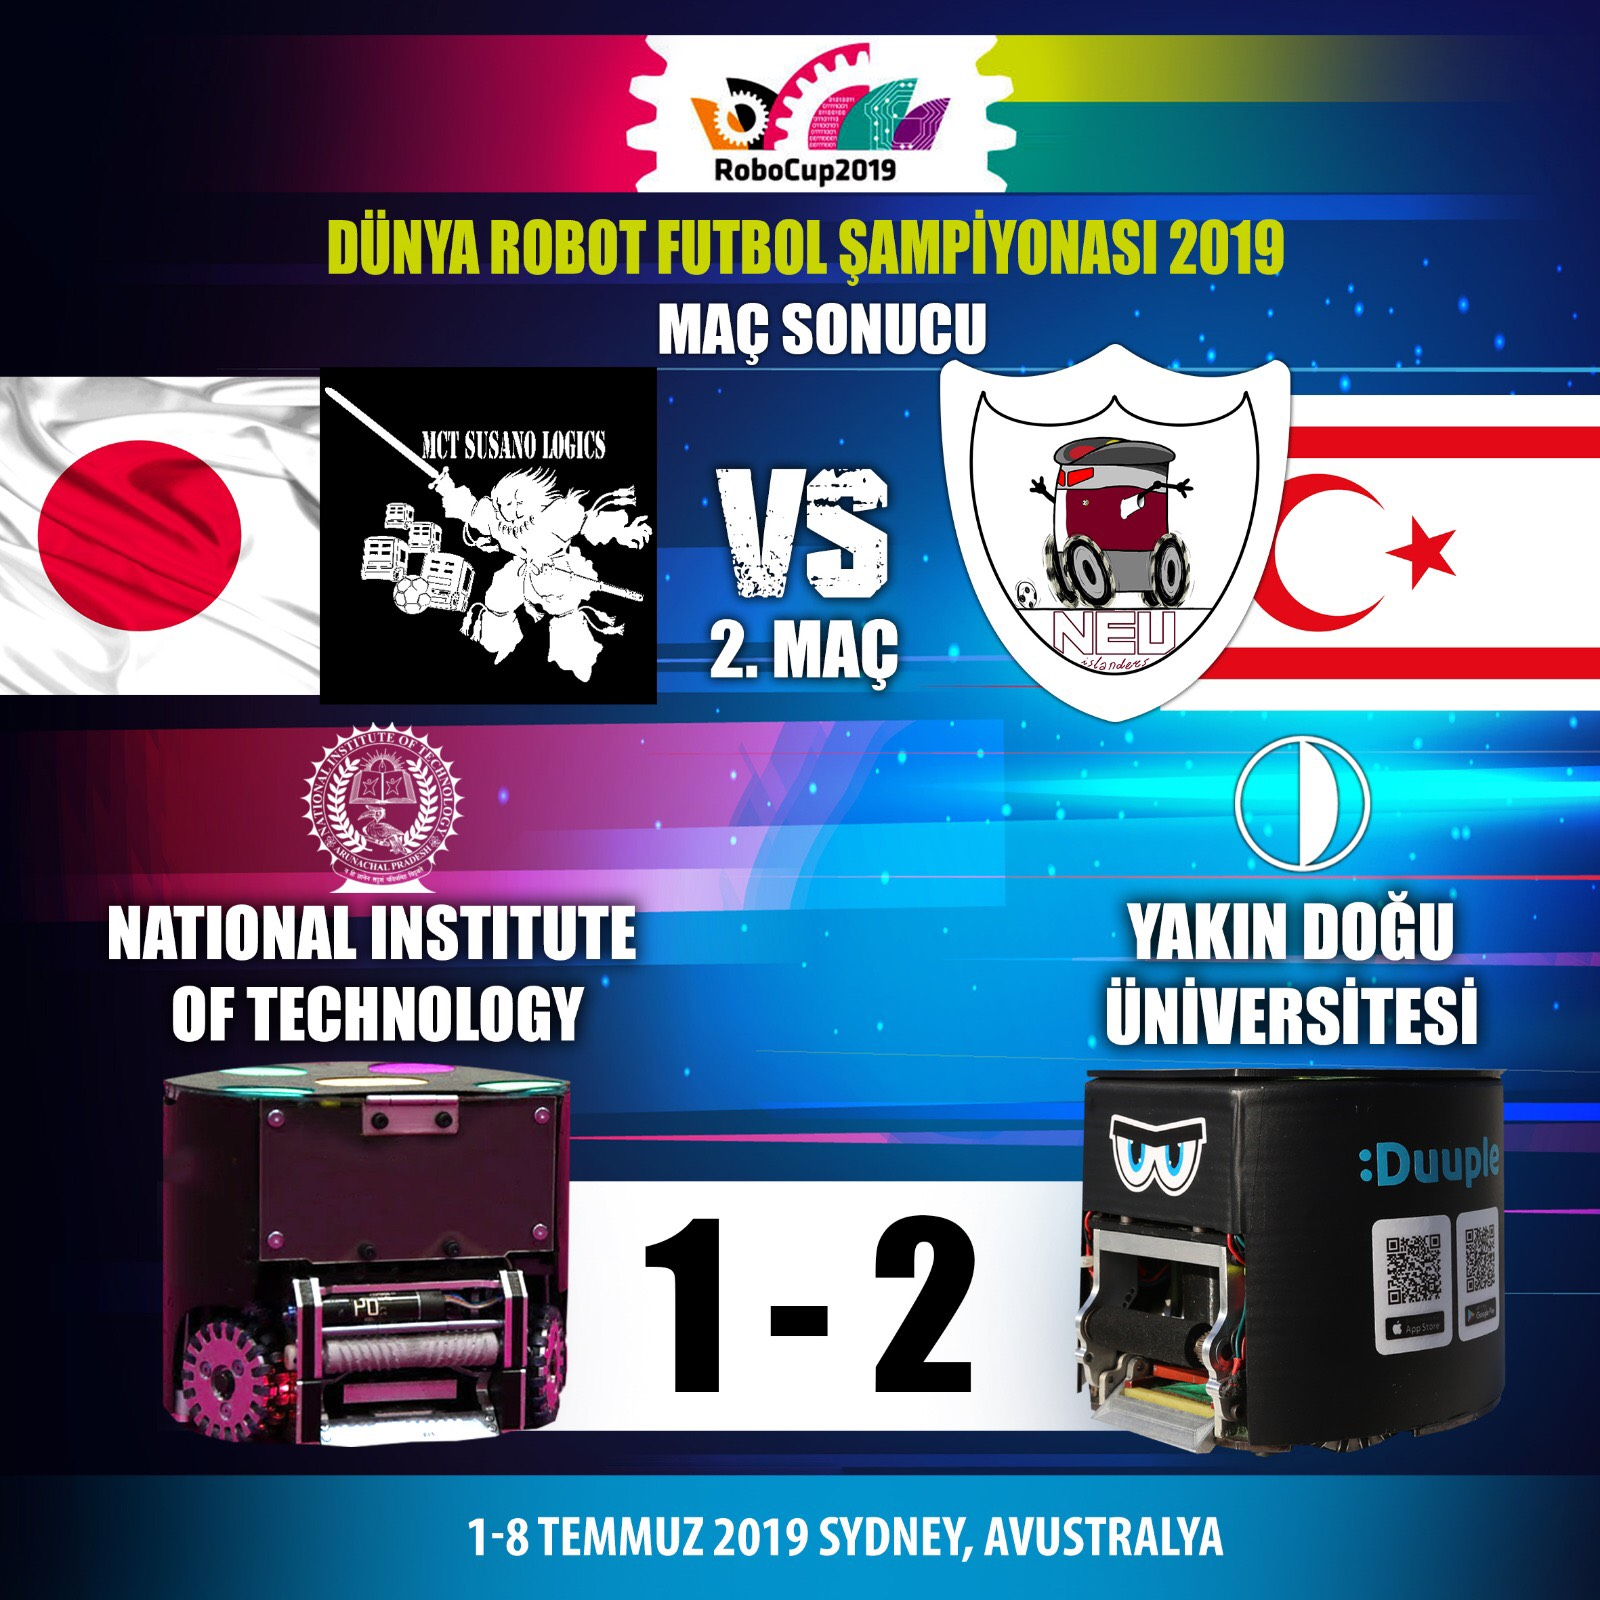 Near East University Robotic Football Team's Second Match at RoboCup